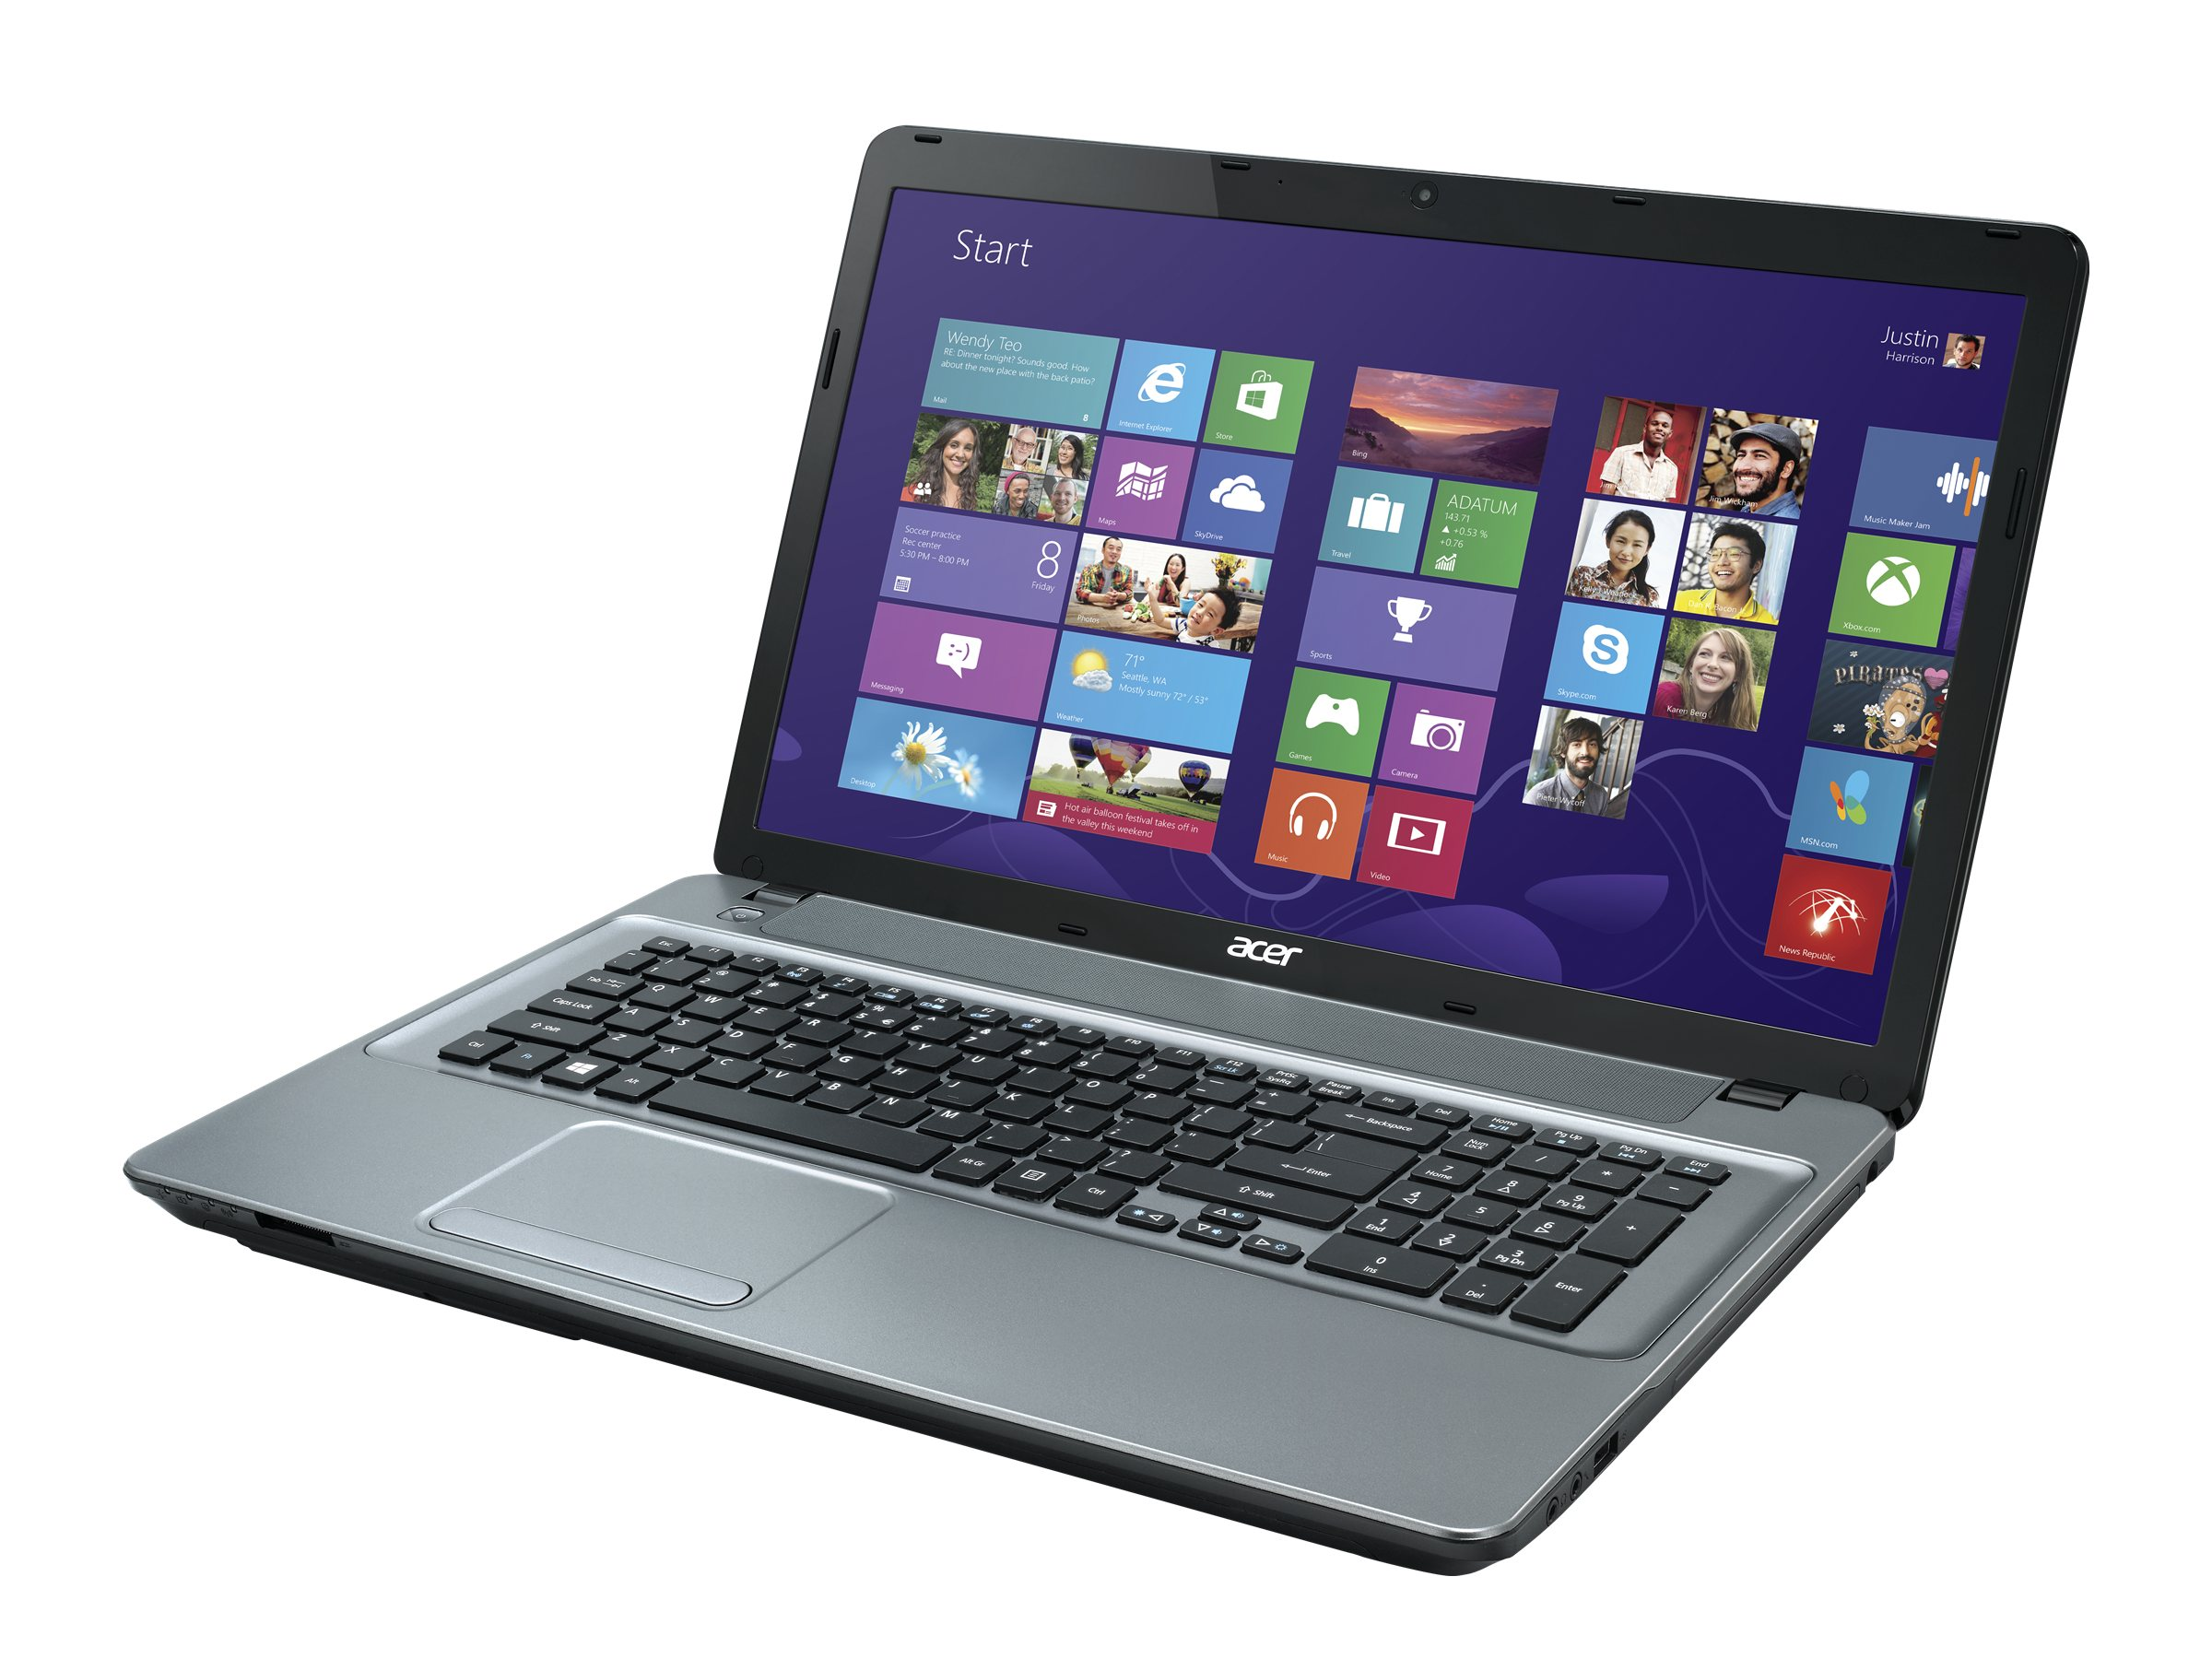 Acer Aspire E1-771-6496 : 2.6GHz Core i5 17.3in display, NX.MG7AA.005, 16733348, Notebooks